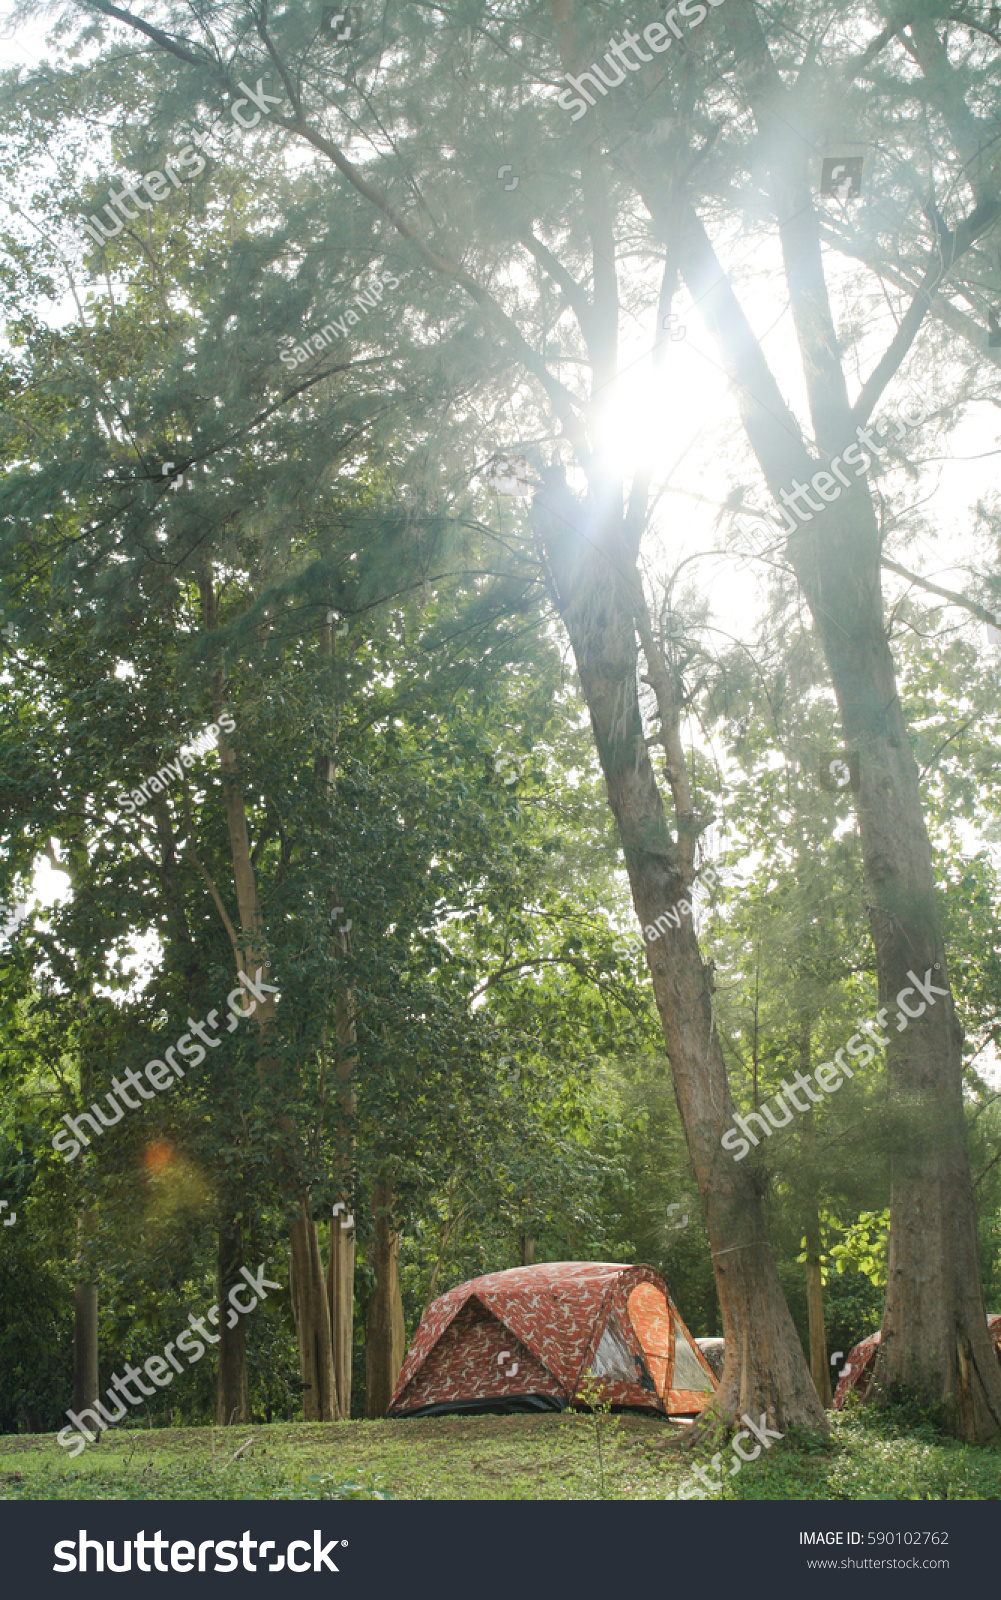 Tent In The Woods : Tent camping woods stock photo shutterstock